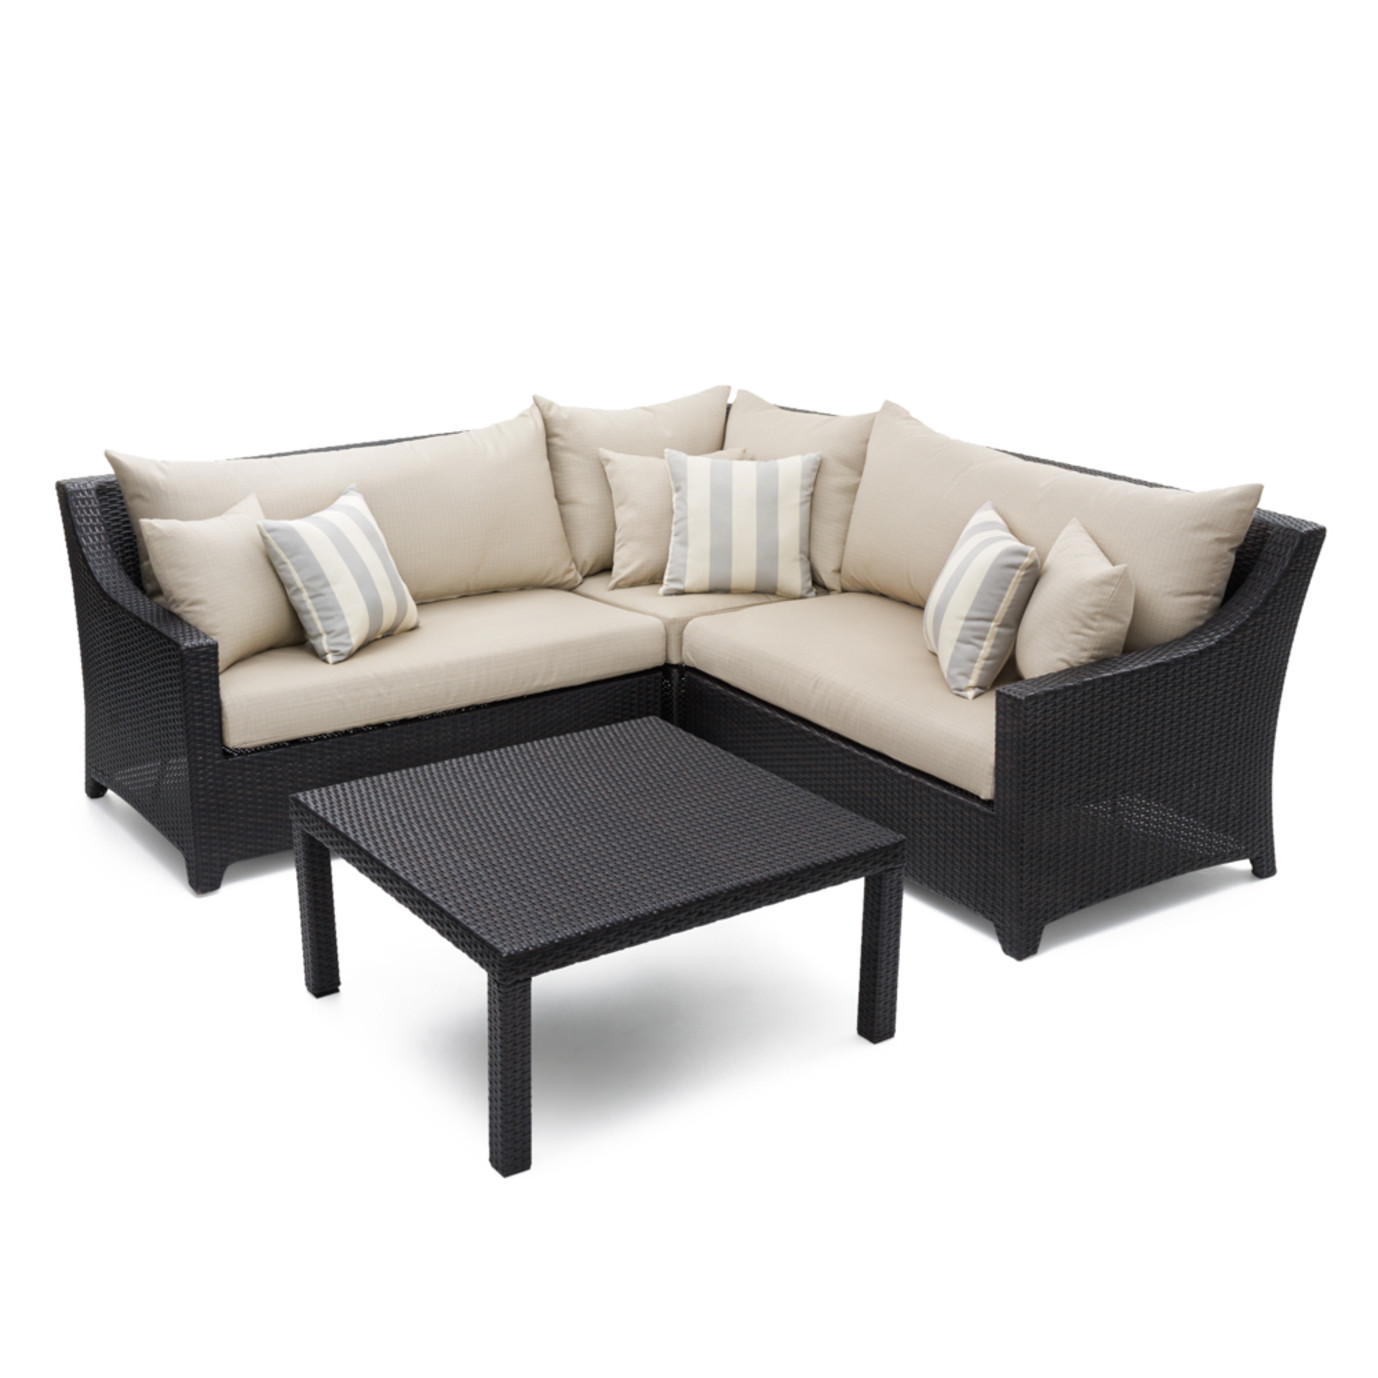 Deco™ 4pc Sectional and Table - Slate Gray